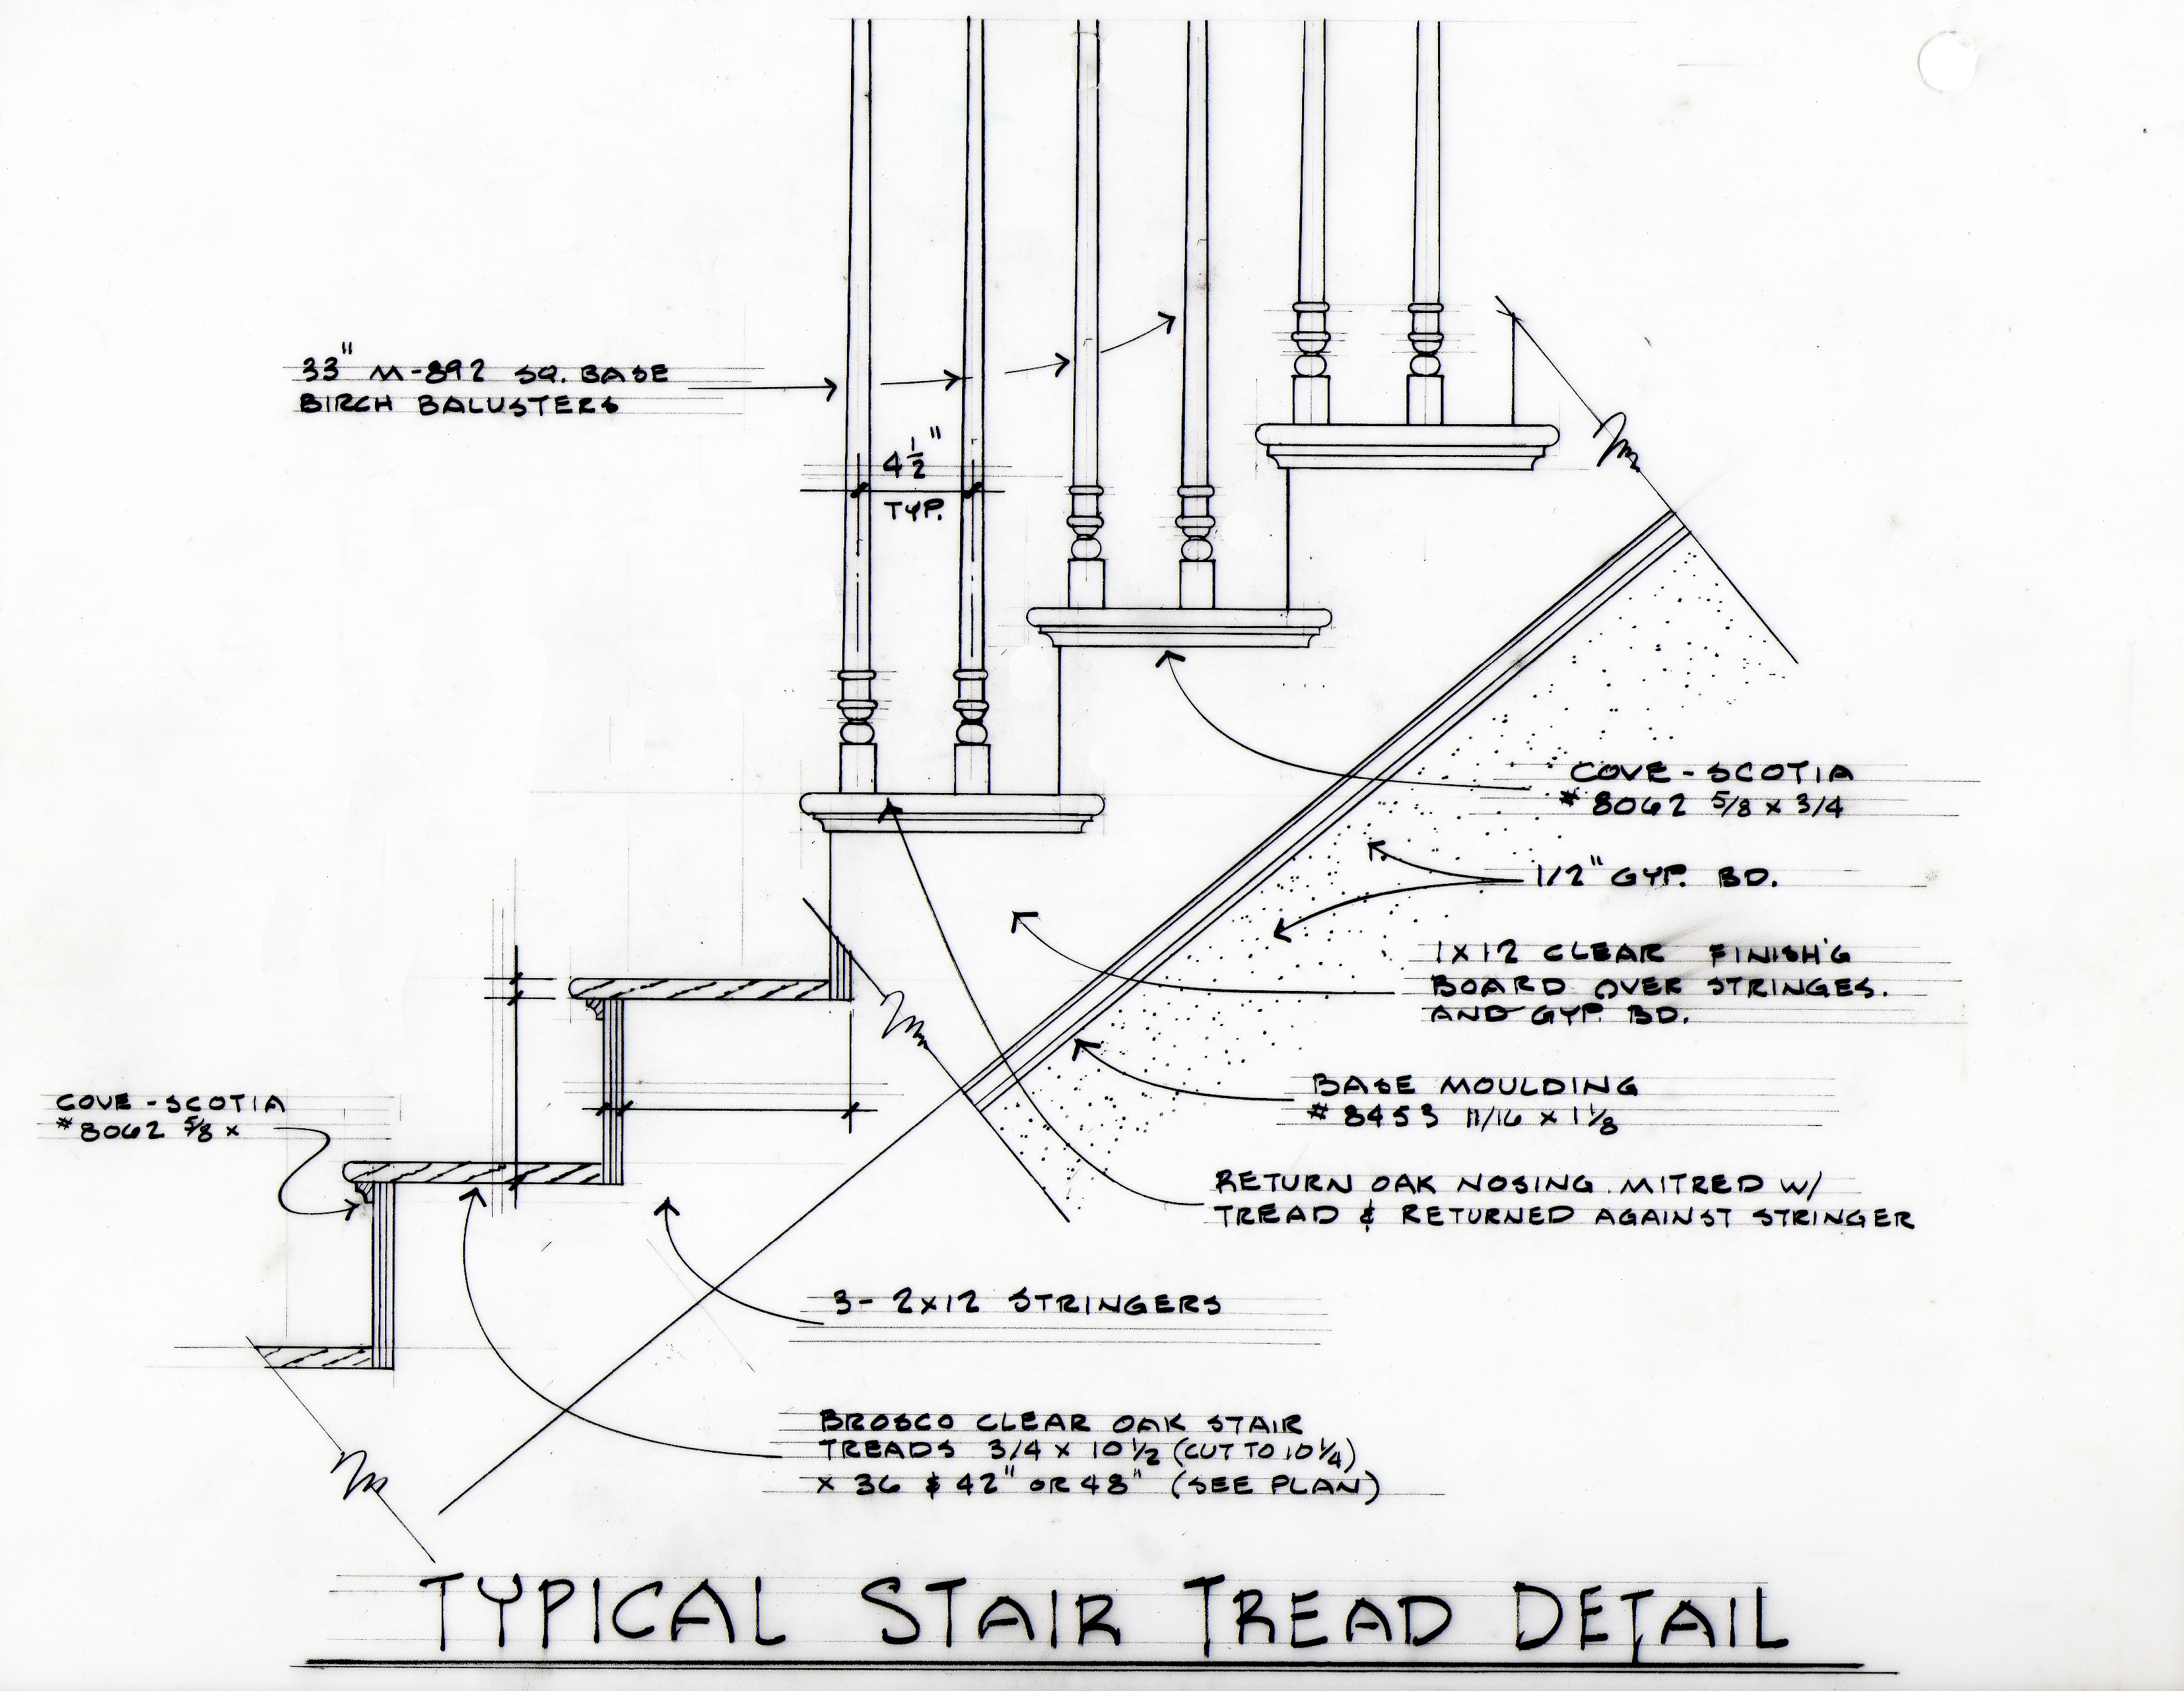 Typical Stair Tread Detail